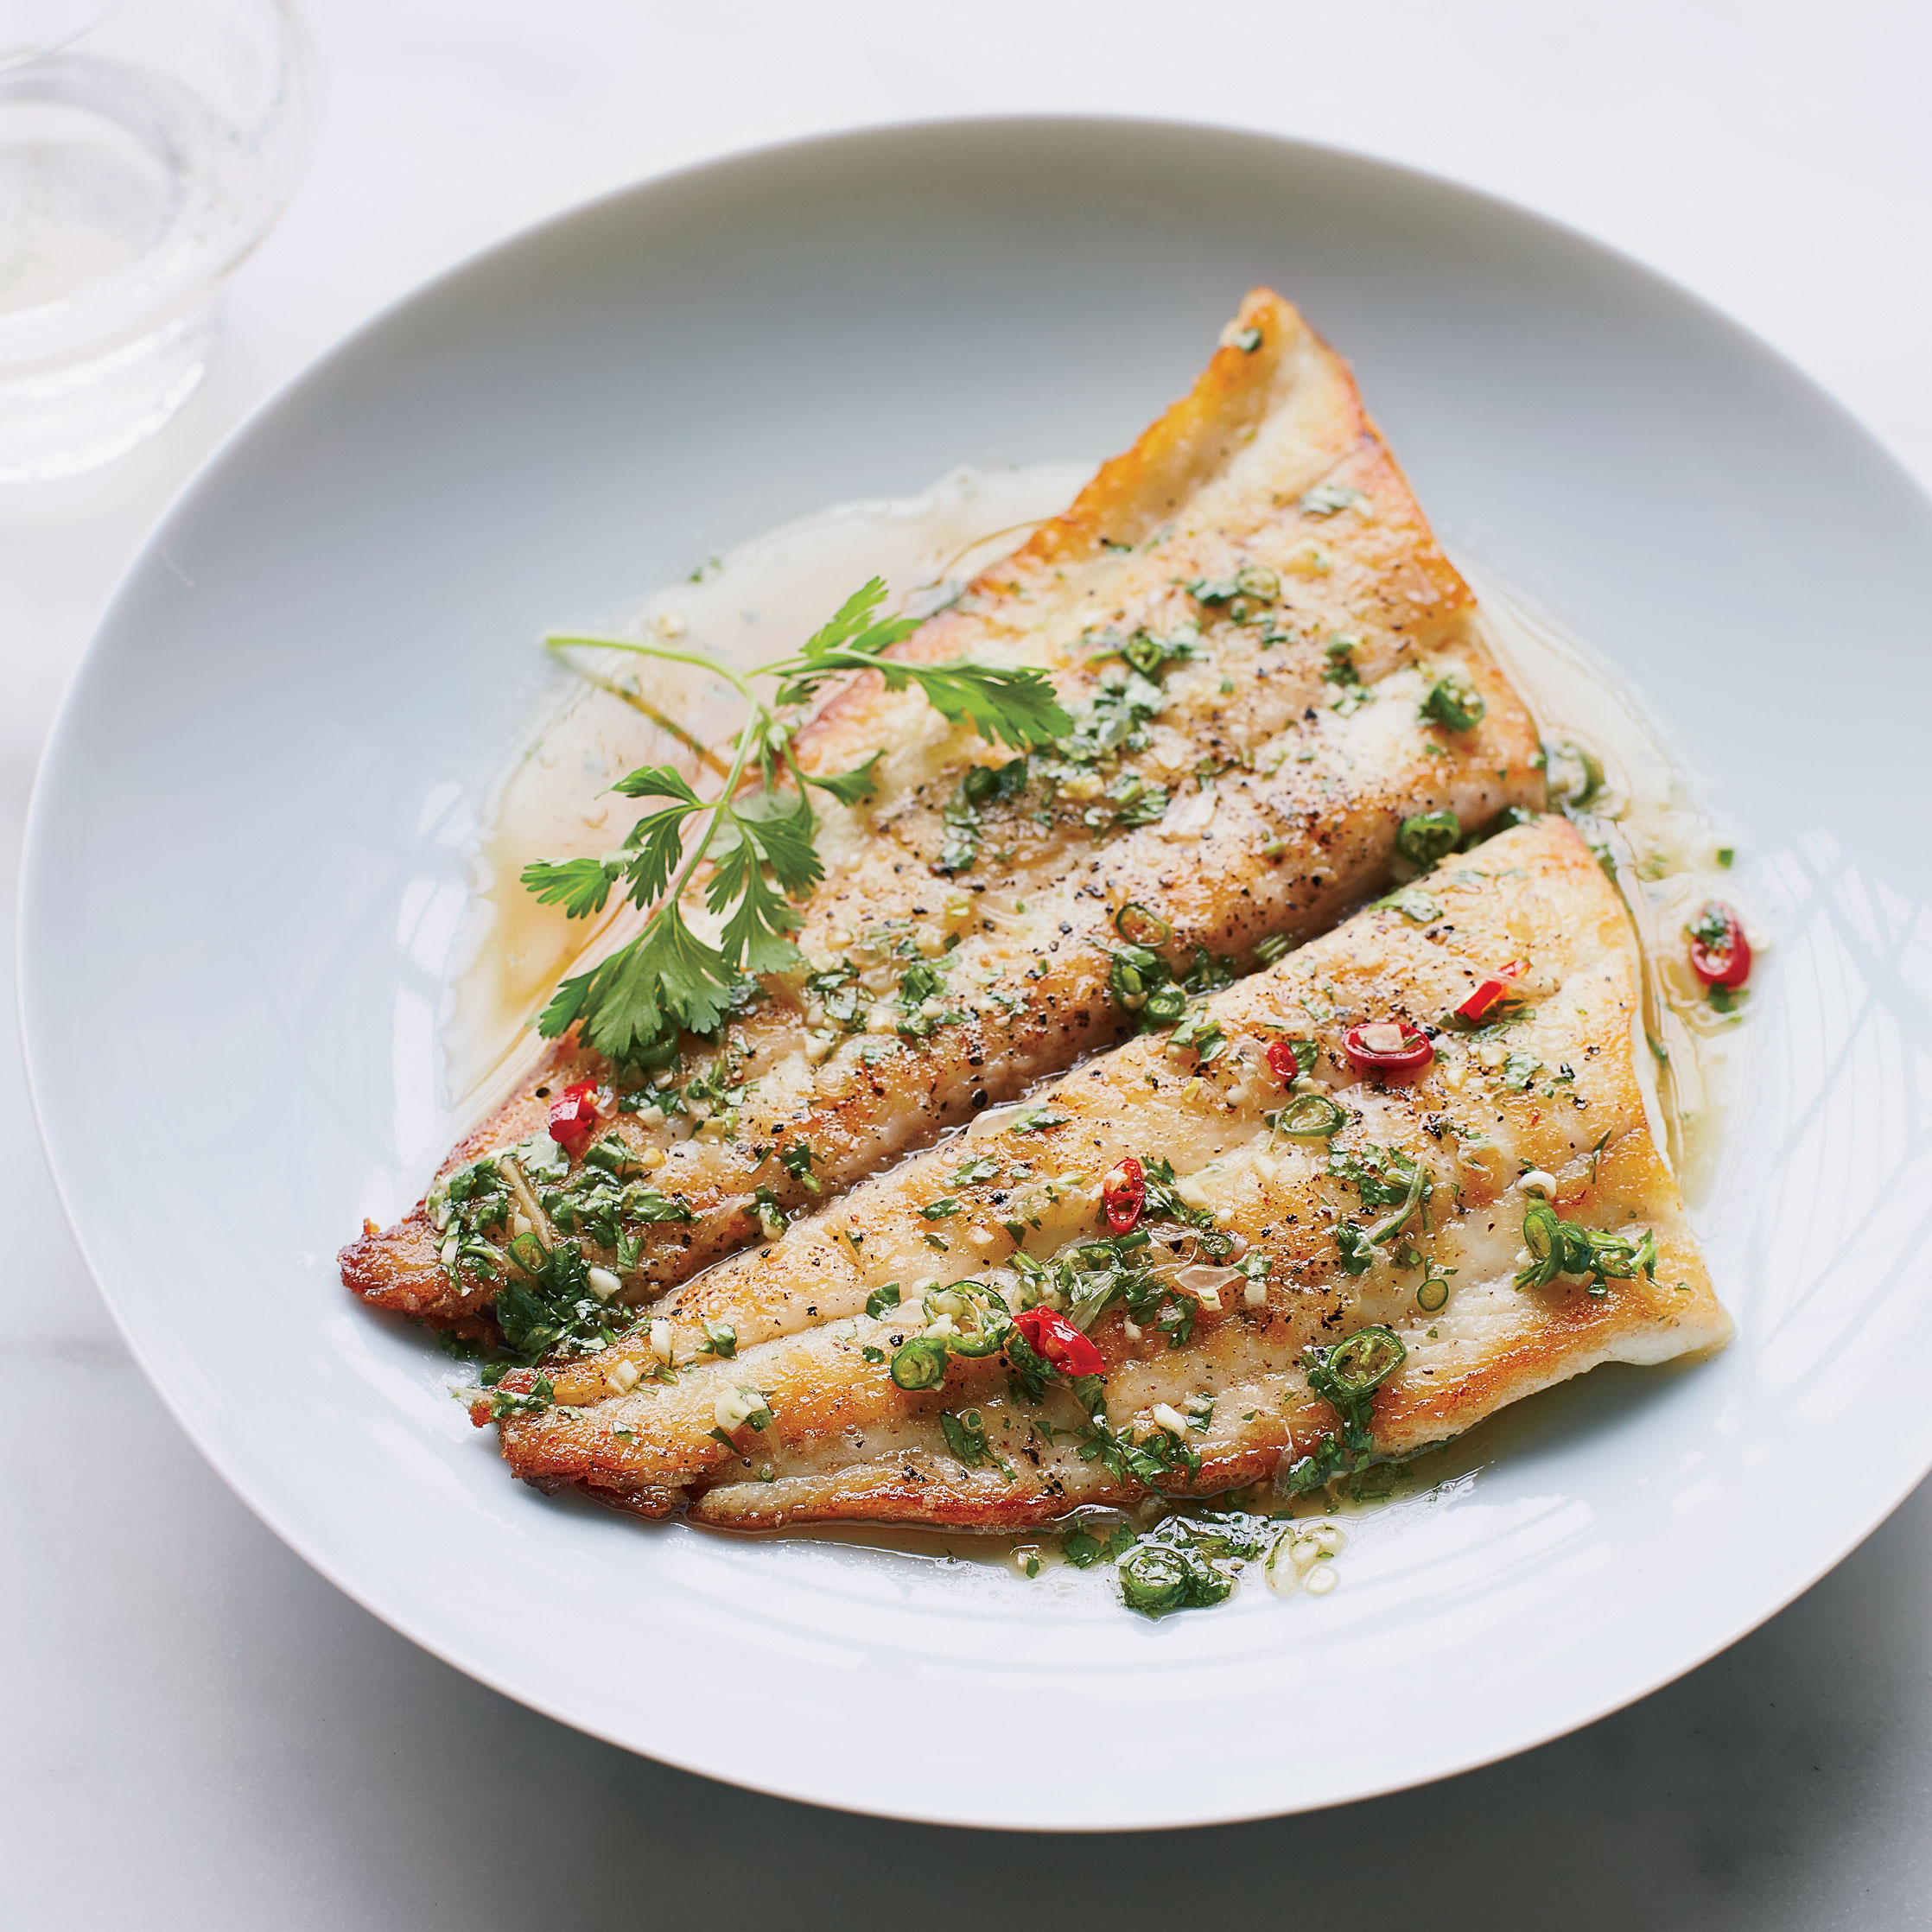 Seared sole with lime sauce recipe kuniko yagi food wine for Sole fish recipes